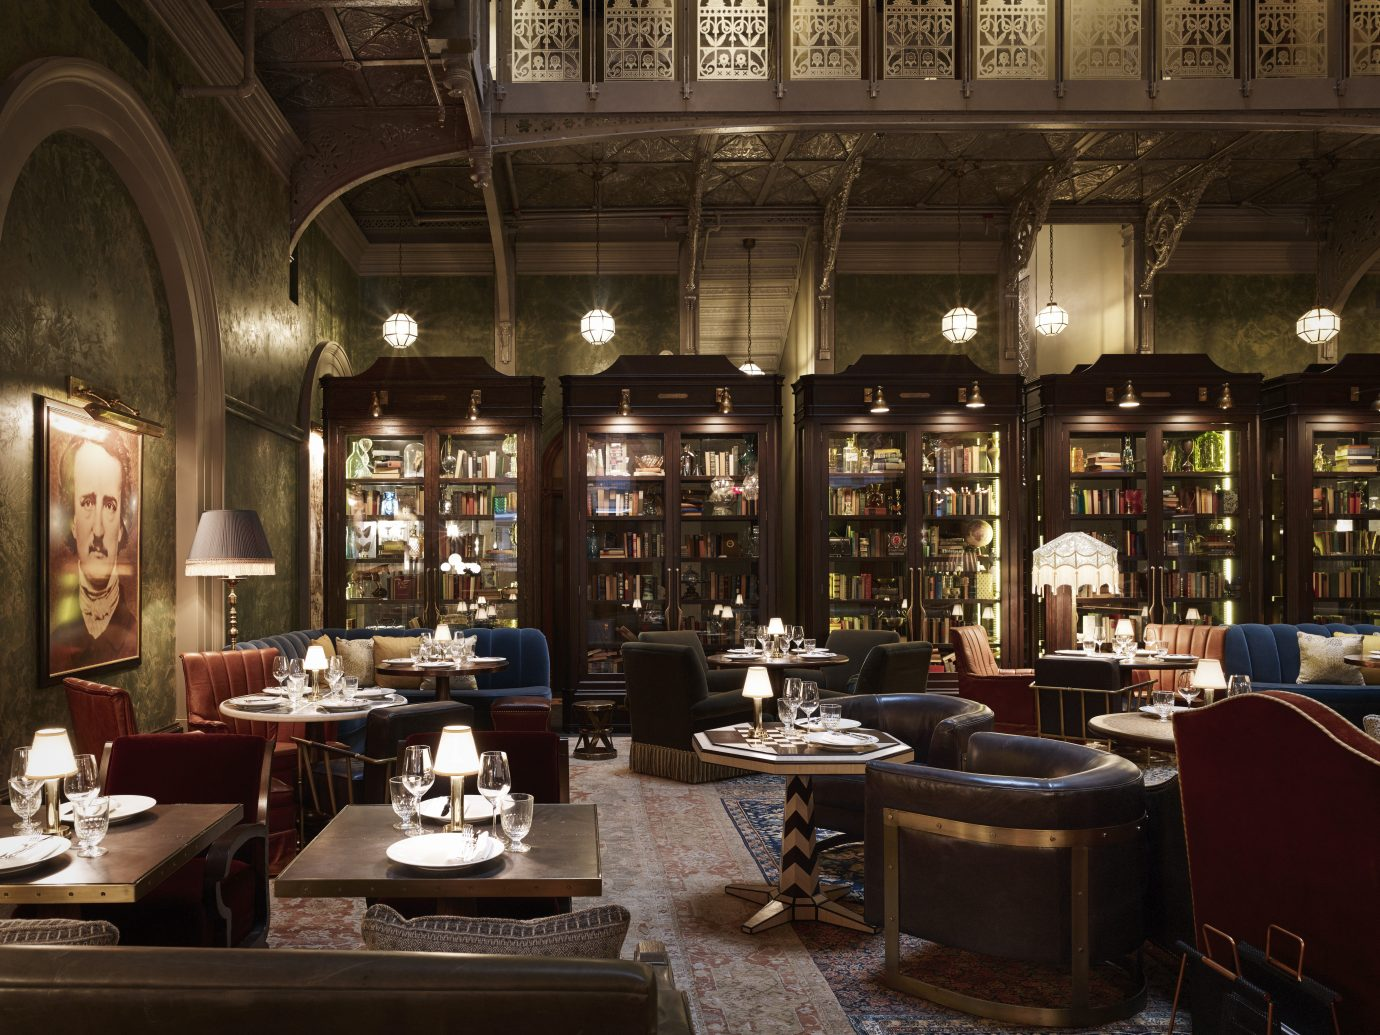 interior of a room that looks like a fancy library but is a bar